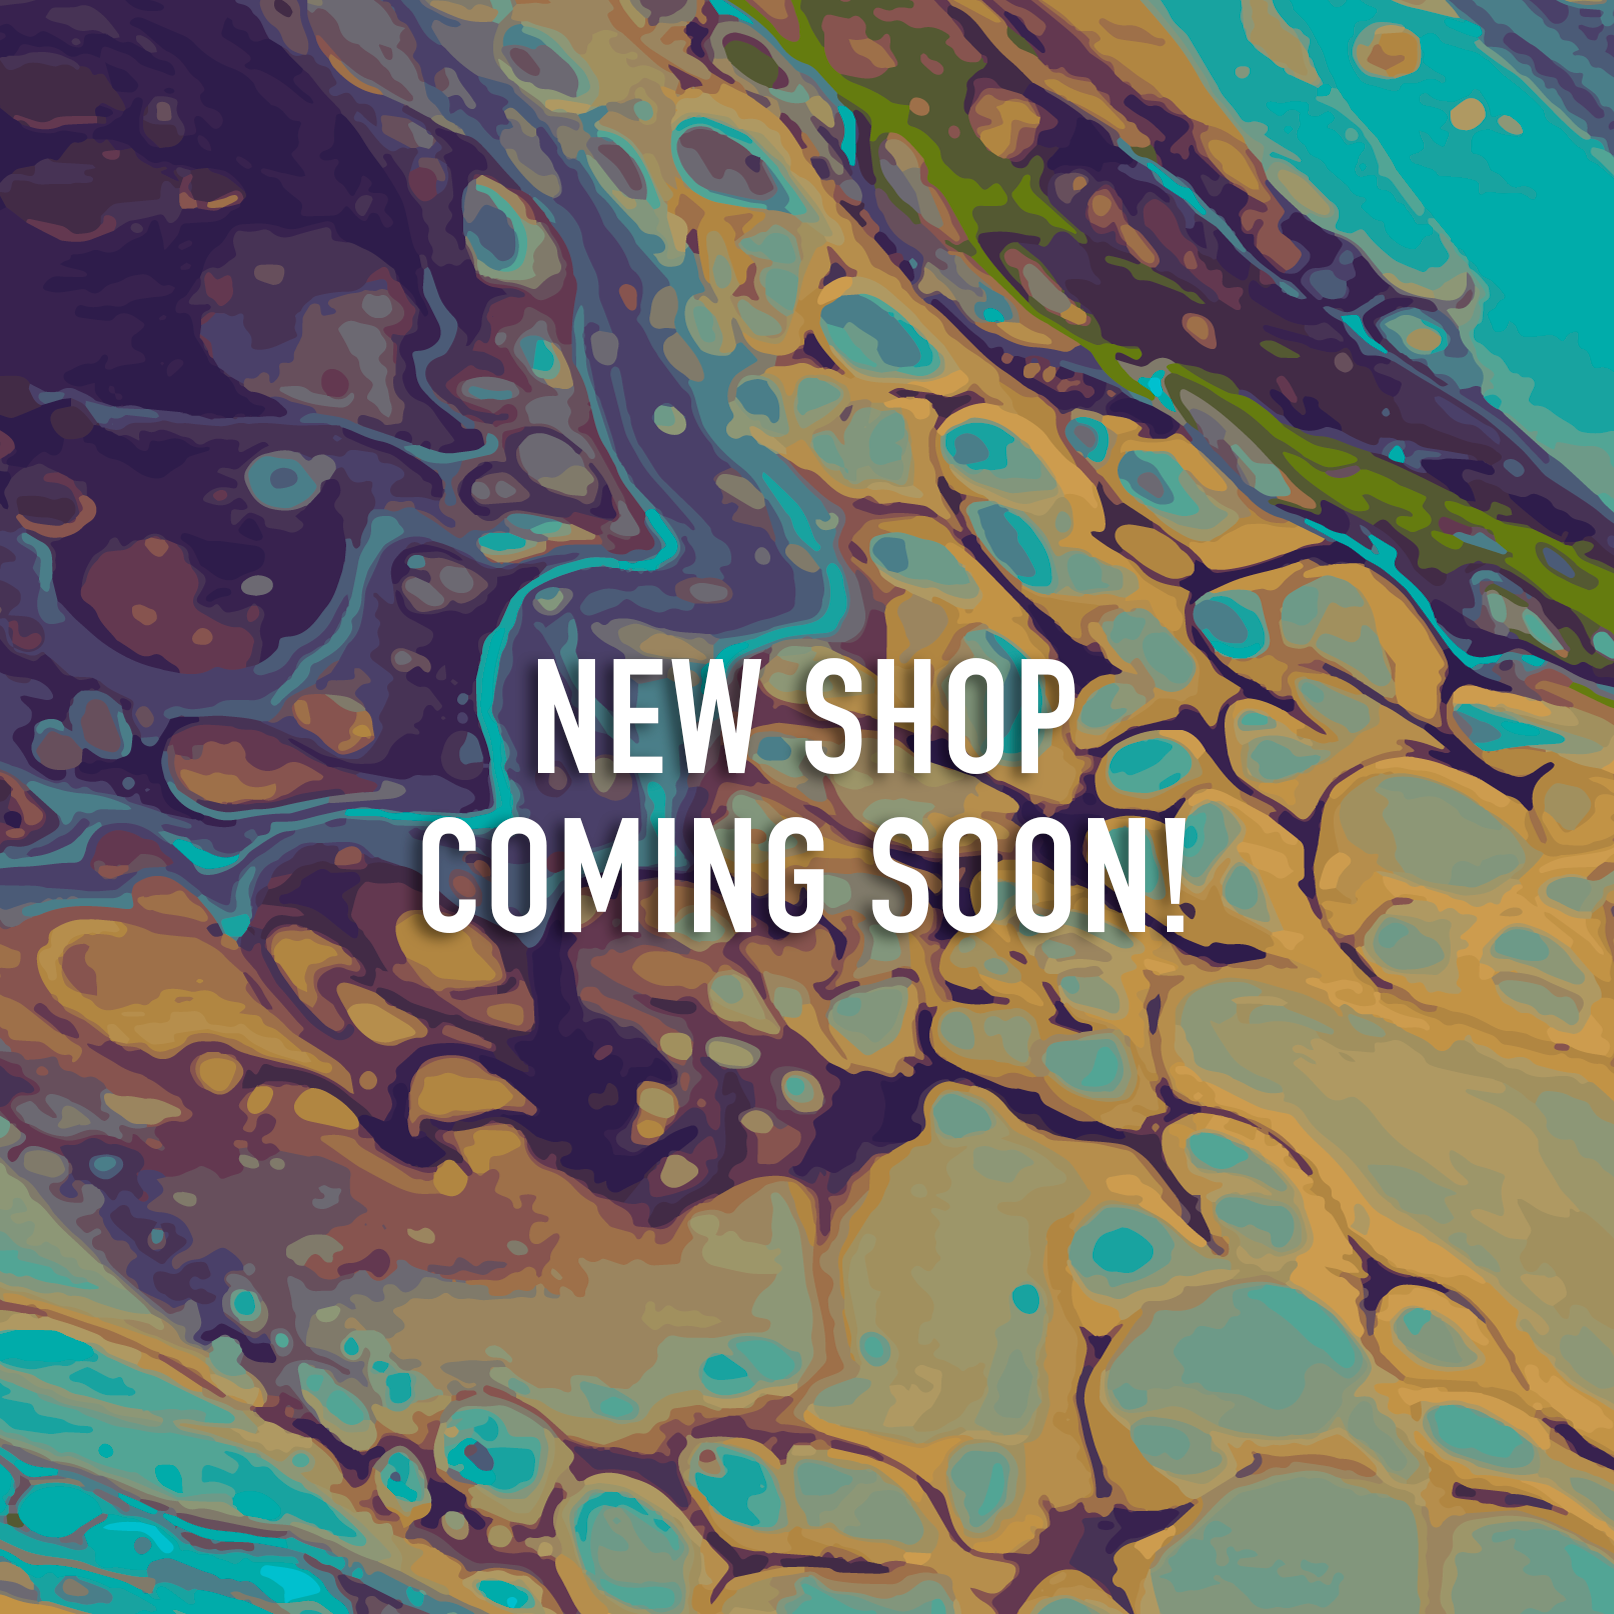 new shop coming soon.png